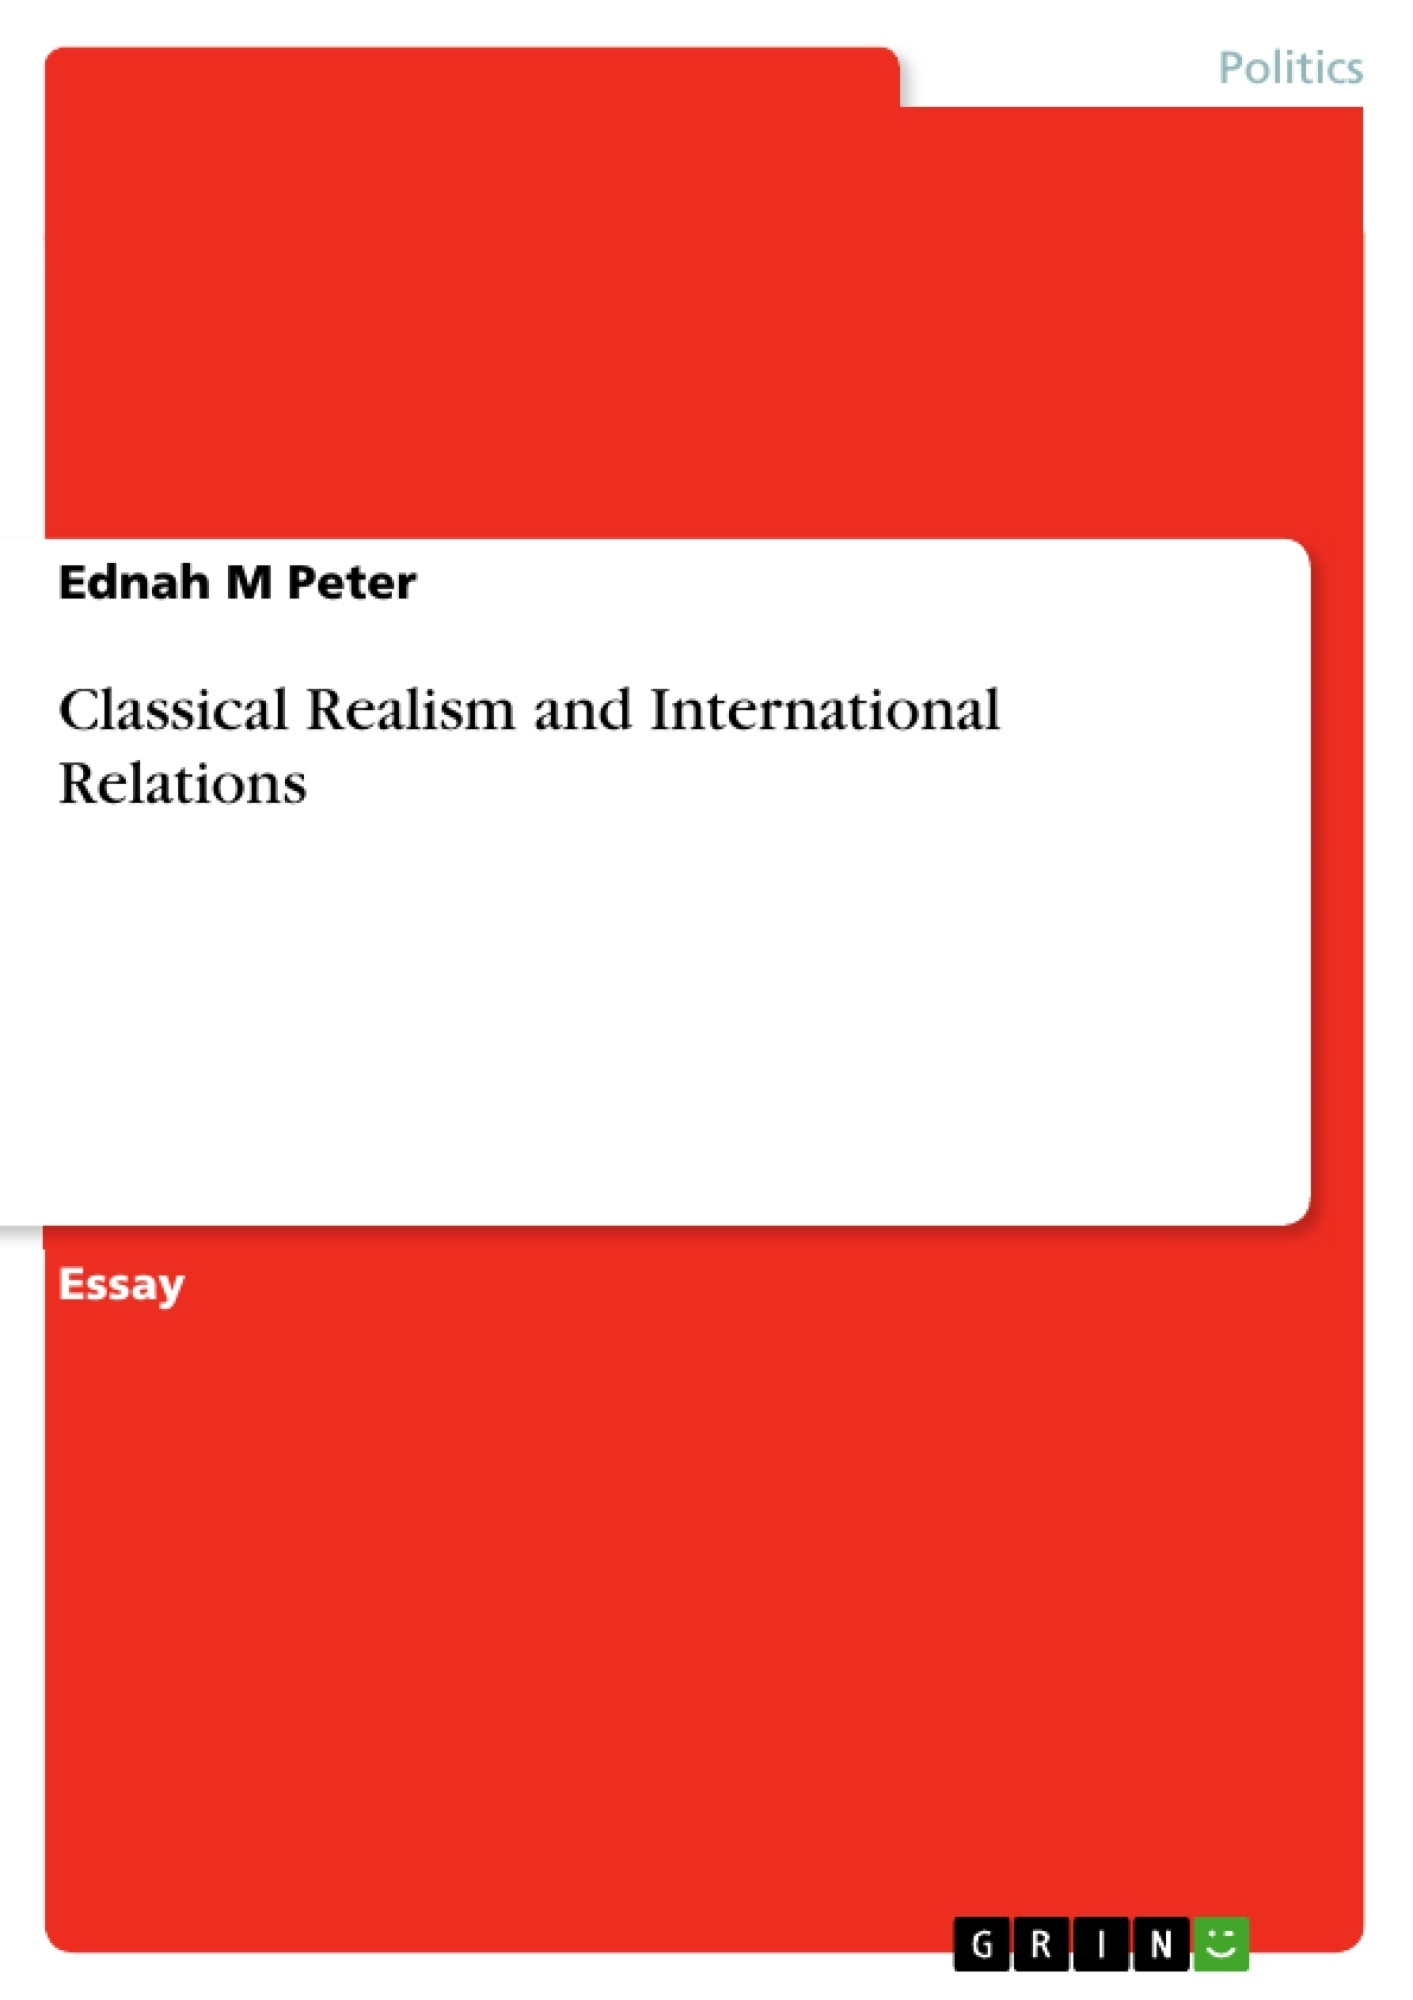 essay realism - international relations The realist theory of international relations essay sample dating back to the establishment of a chair of international relations at the university of wales in aberstwyth in 1919, after the end of the first world war the need for a theoretical and analytical study of global politics vise a vise the necessity for international relations was conceived.